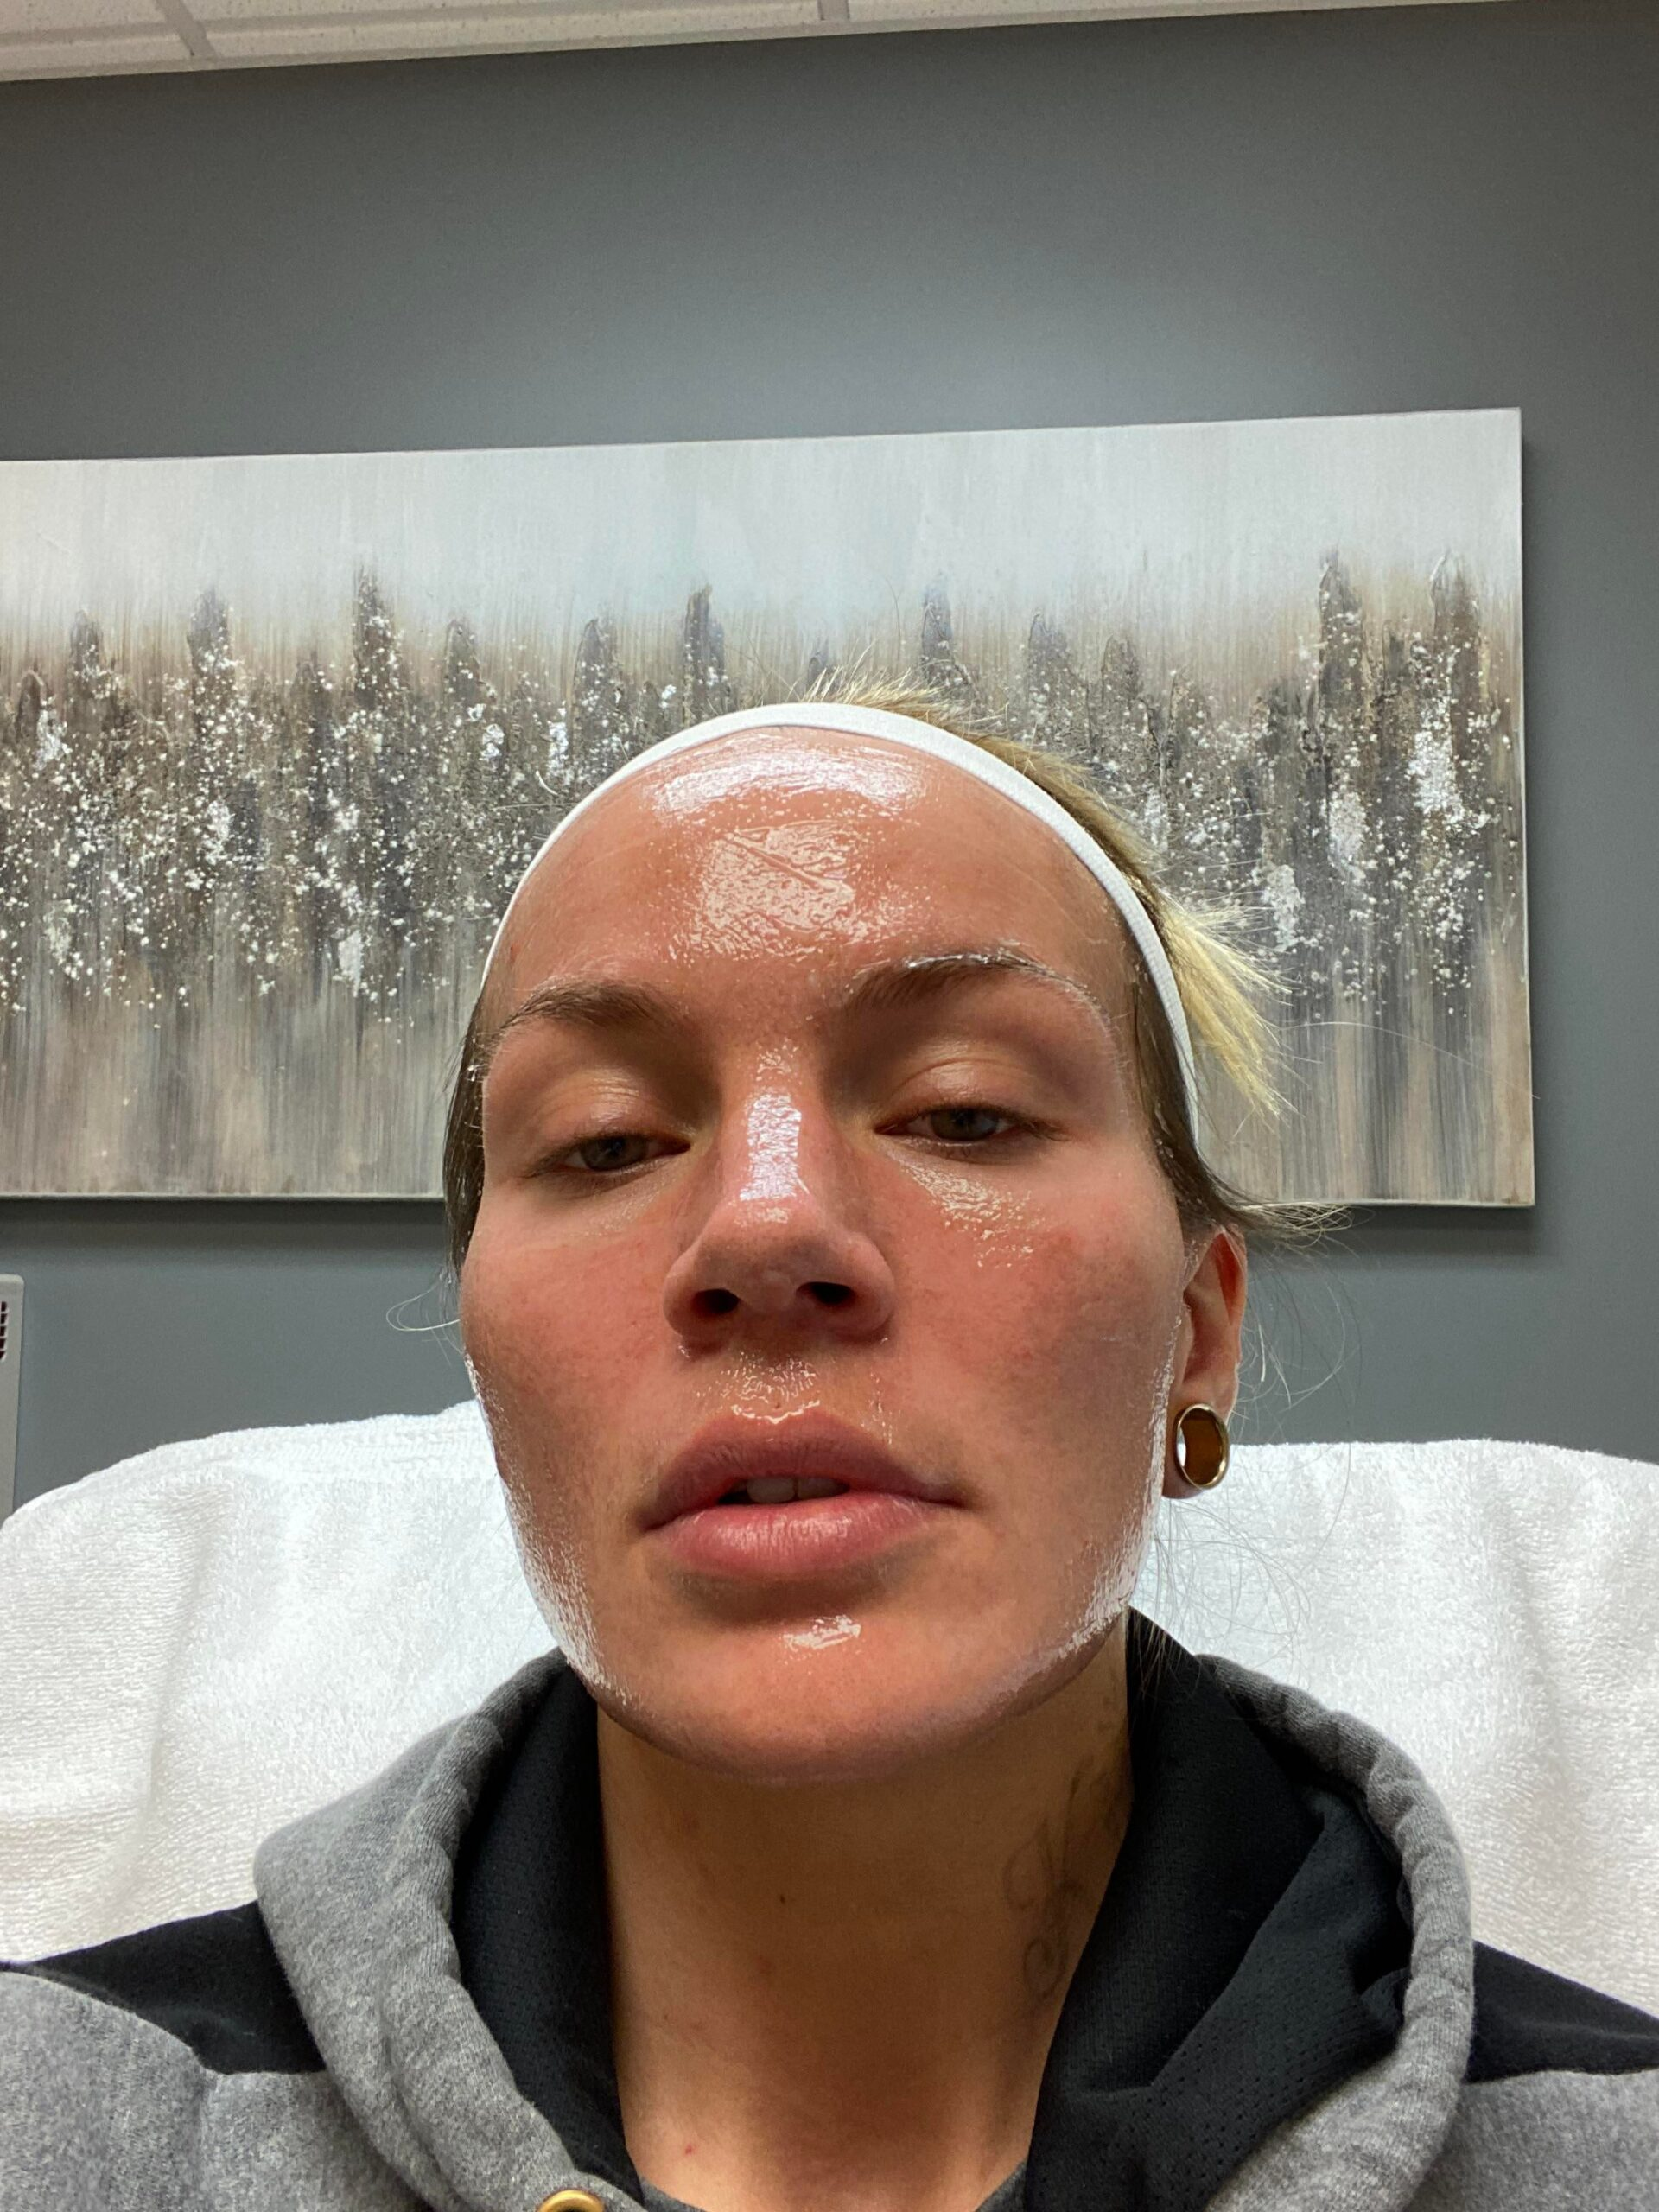 [Review] I'm about to get DeepFX CO2 laser resurfacing. Wish me luck!